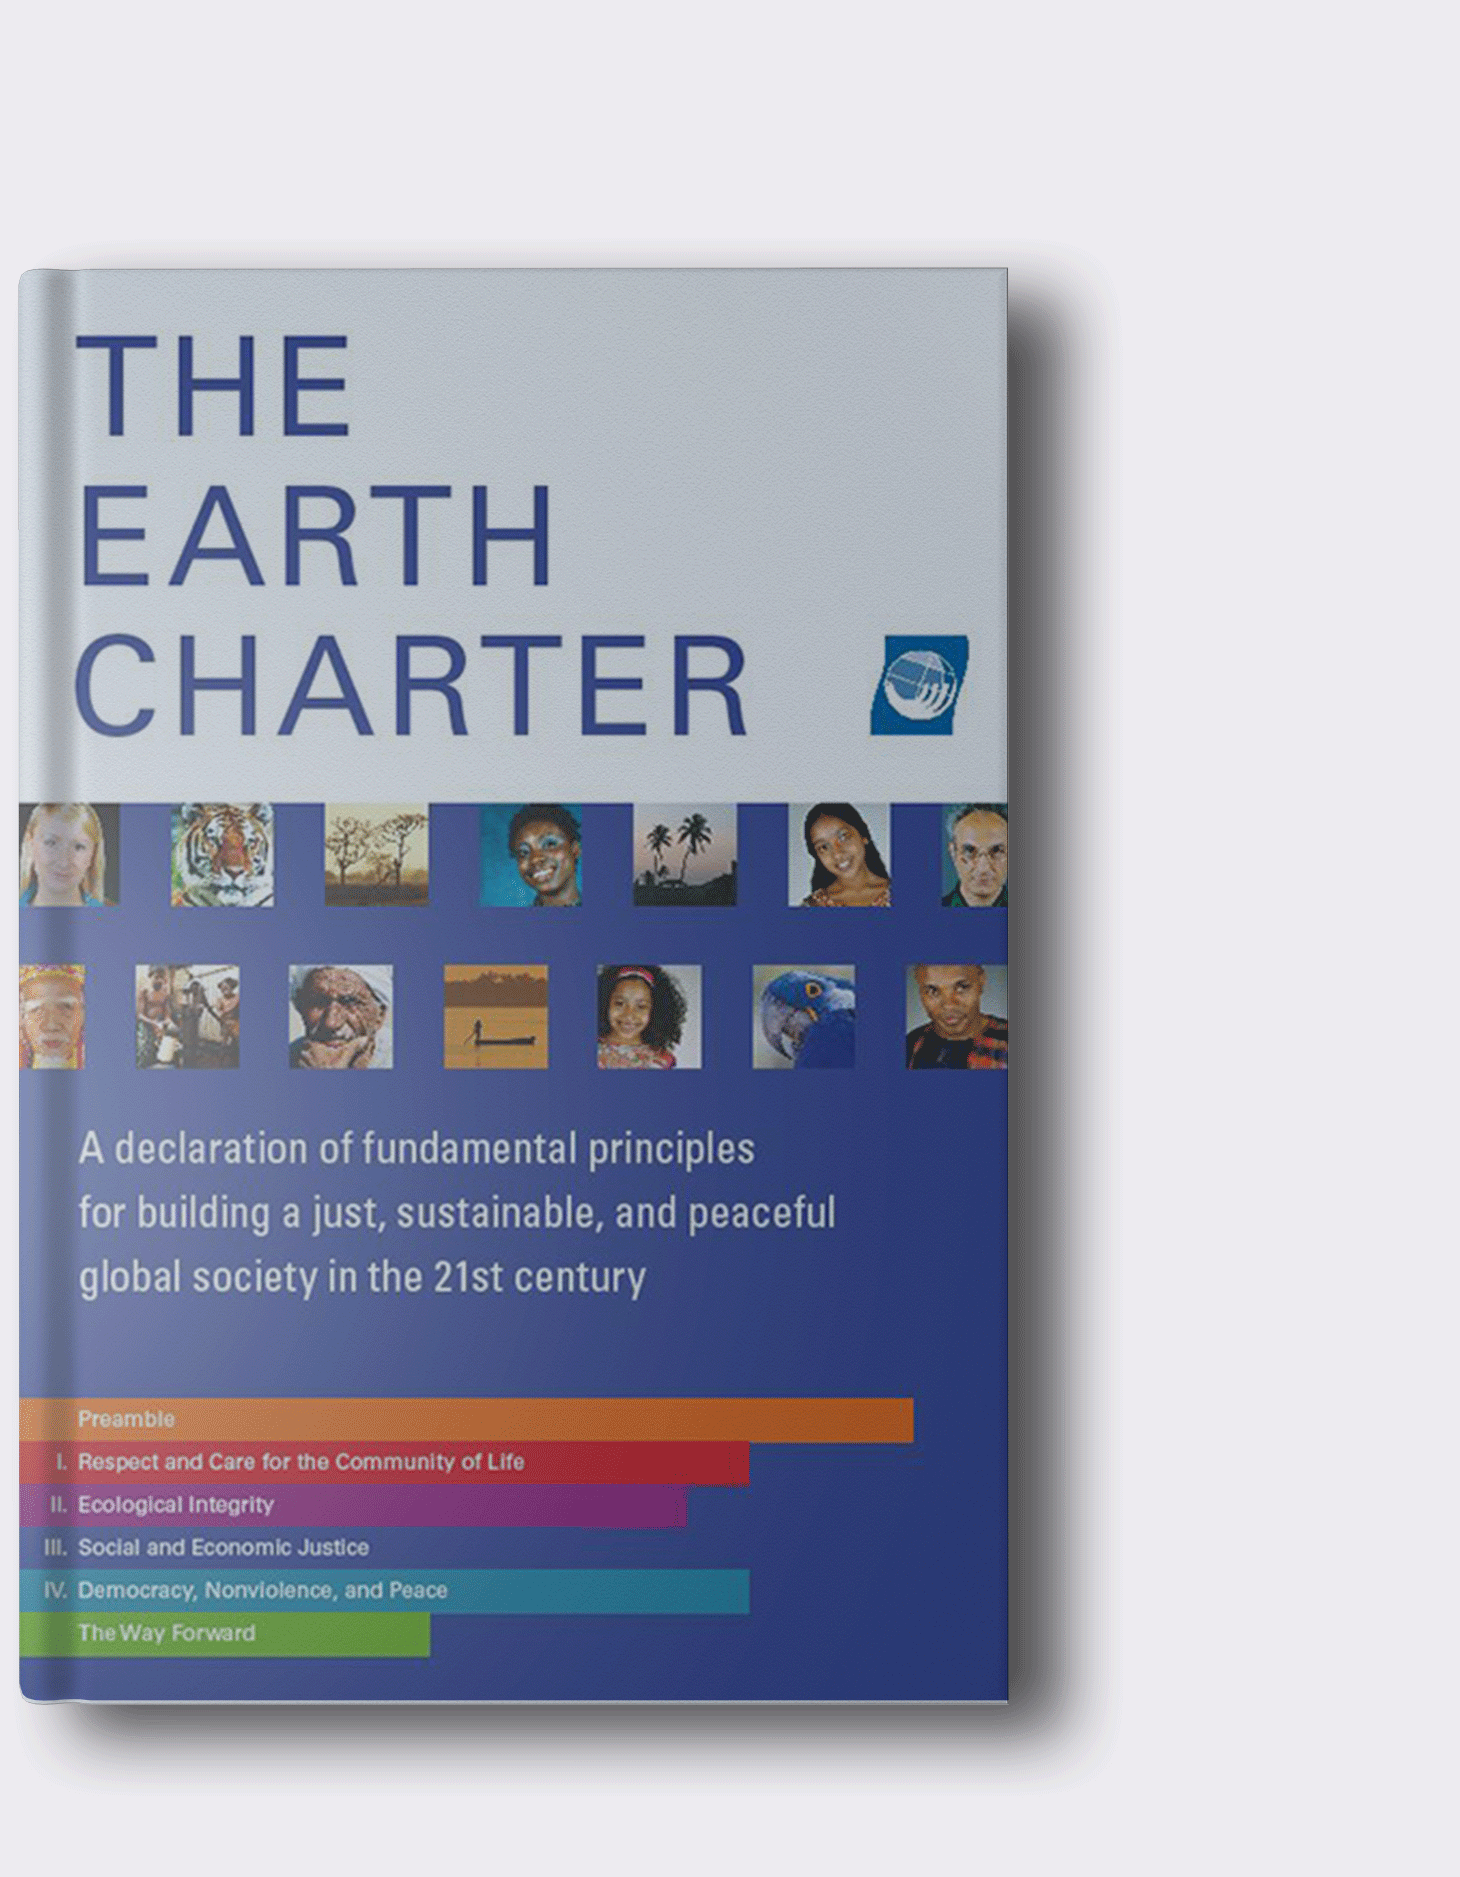 The Earth Charter: The ethical framework for building a just, sustainable and peaceful global society in the 21st century